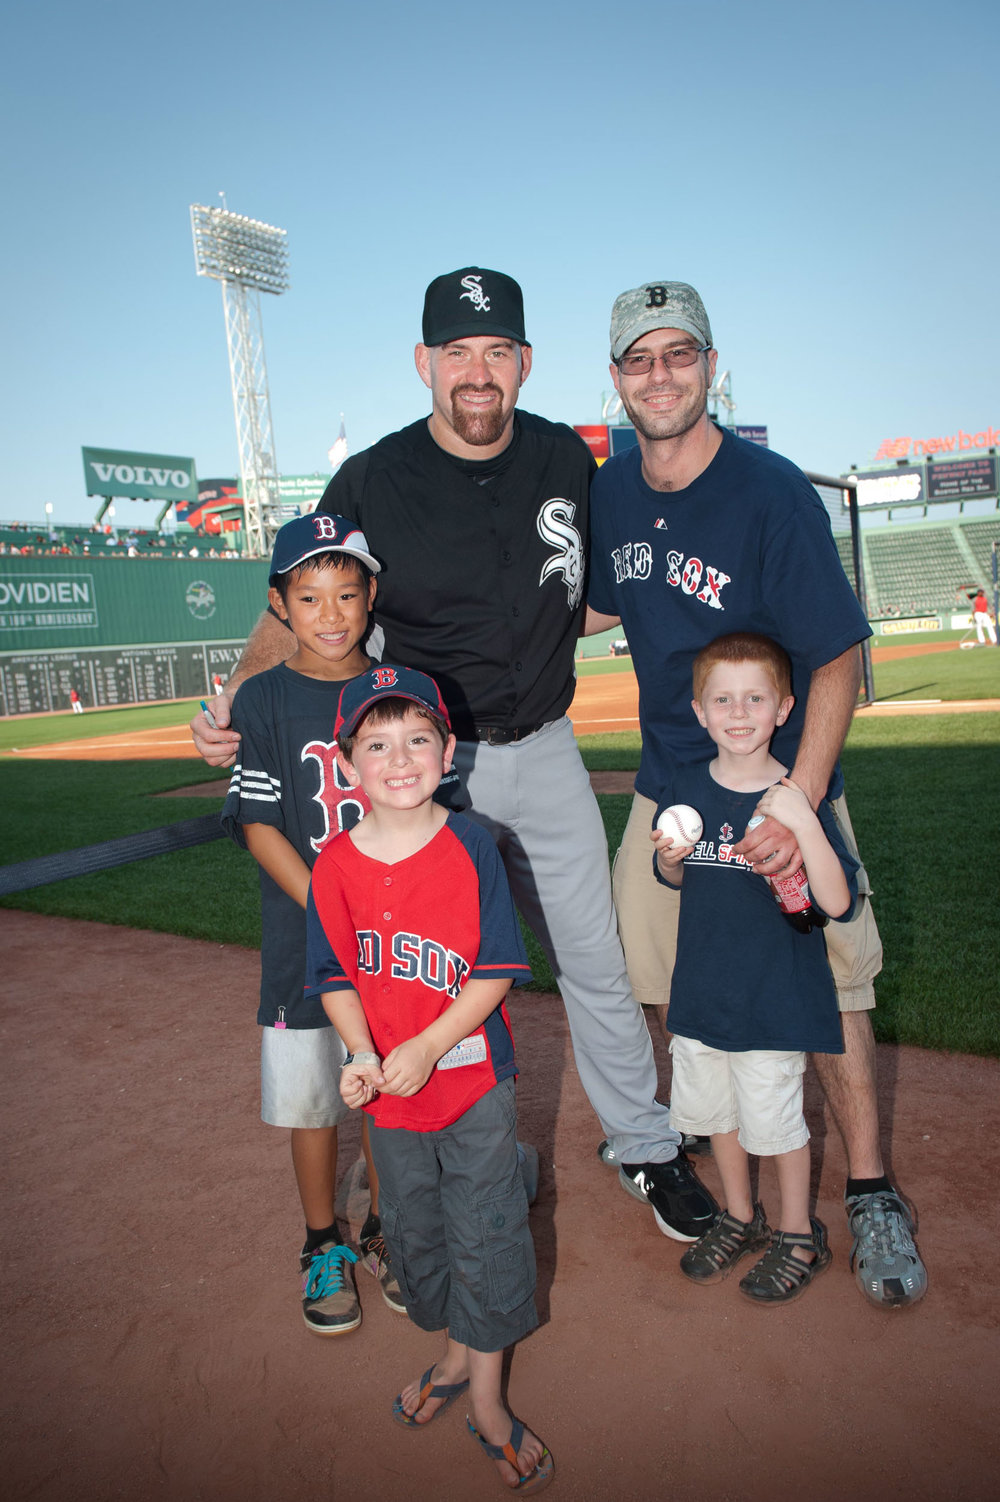 Maura Wayman Photography, Photography, Corporate Photography, Massachusetts, Boston, Metro West, events, Corporate events, Photographer, Functions, Parties, Fundraisers, Kevin Youkilis, Youk, Fenway Park, Red Sox, field,